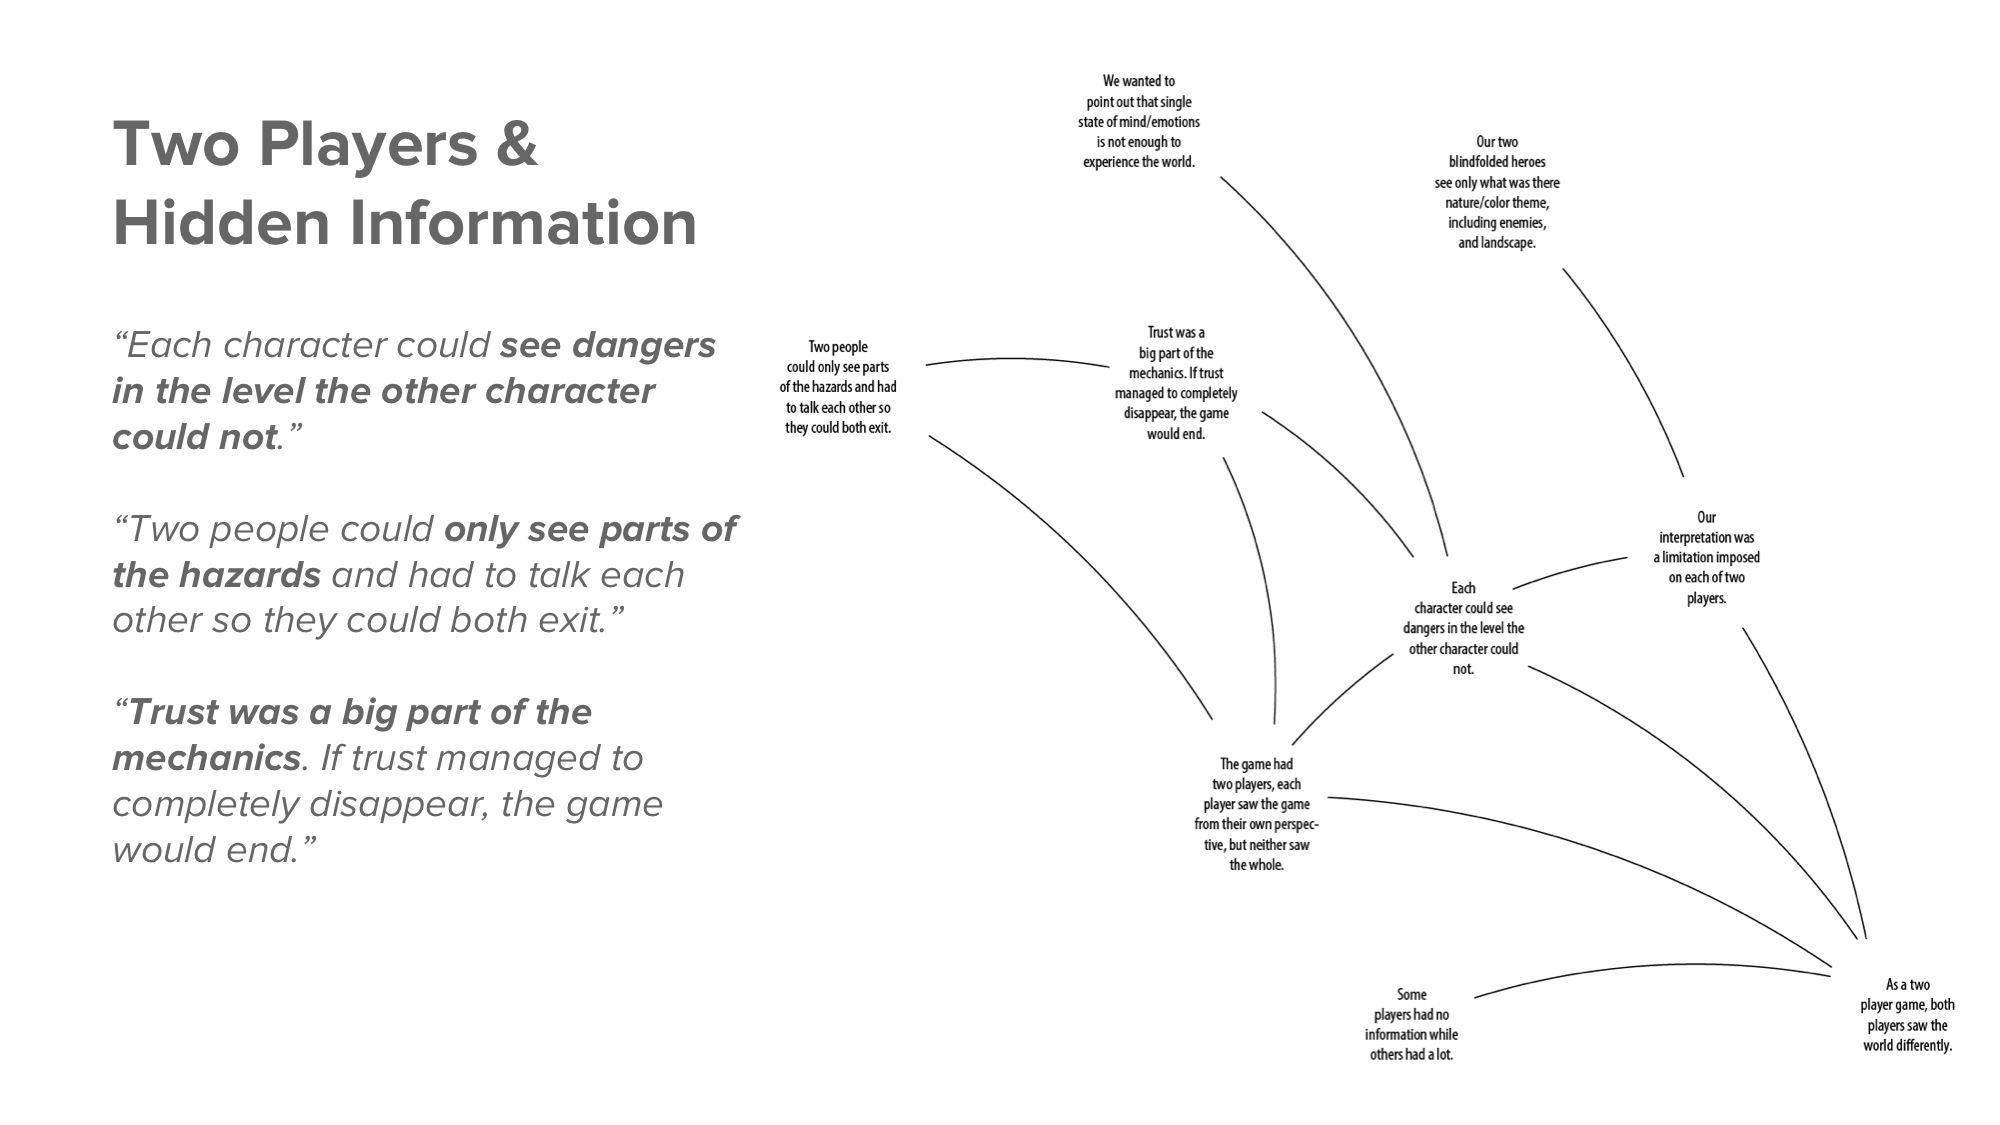 2014.10.17 - -How Are Ideas Connected- Drawing the Design Process of Idea Networks in Global Game Jam- - Meaningful Play 2014 19.jpeg